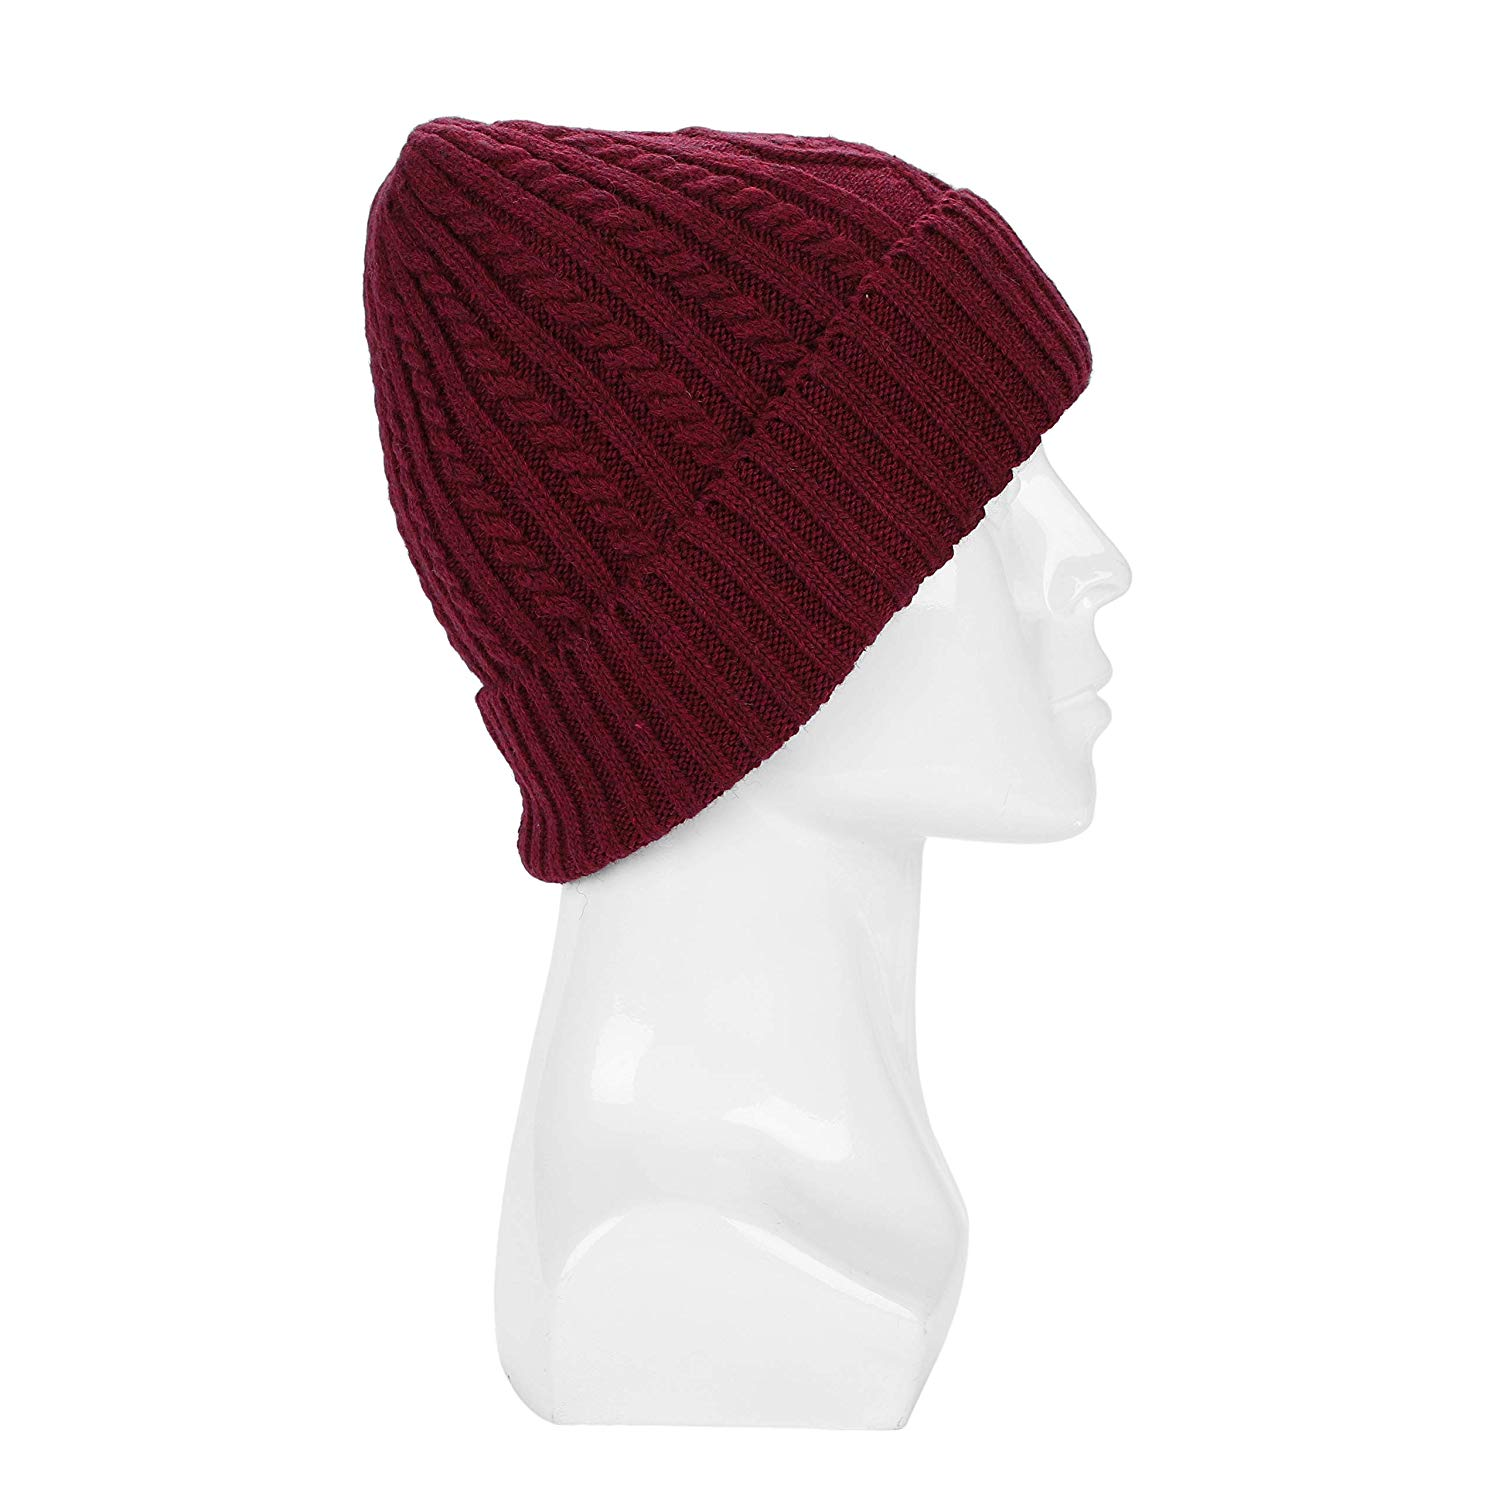 109b7f1892cb8f Get Quotations · Men Women Winter Beanie Hat with Warm Fleece Lined Thick  Slouchy Snow Knit Skull Ski Cap